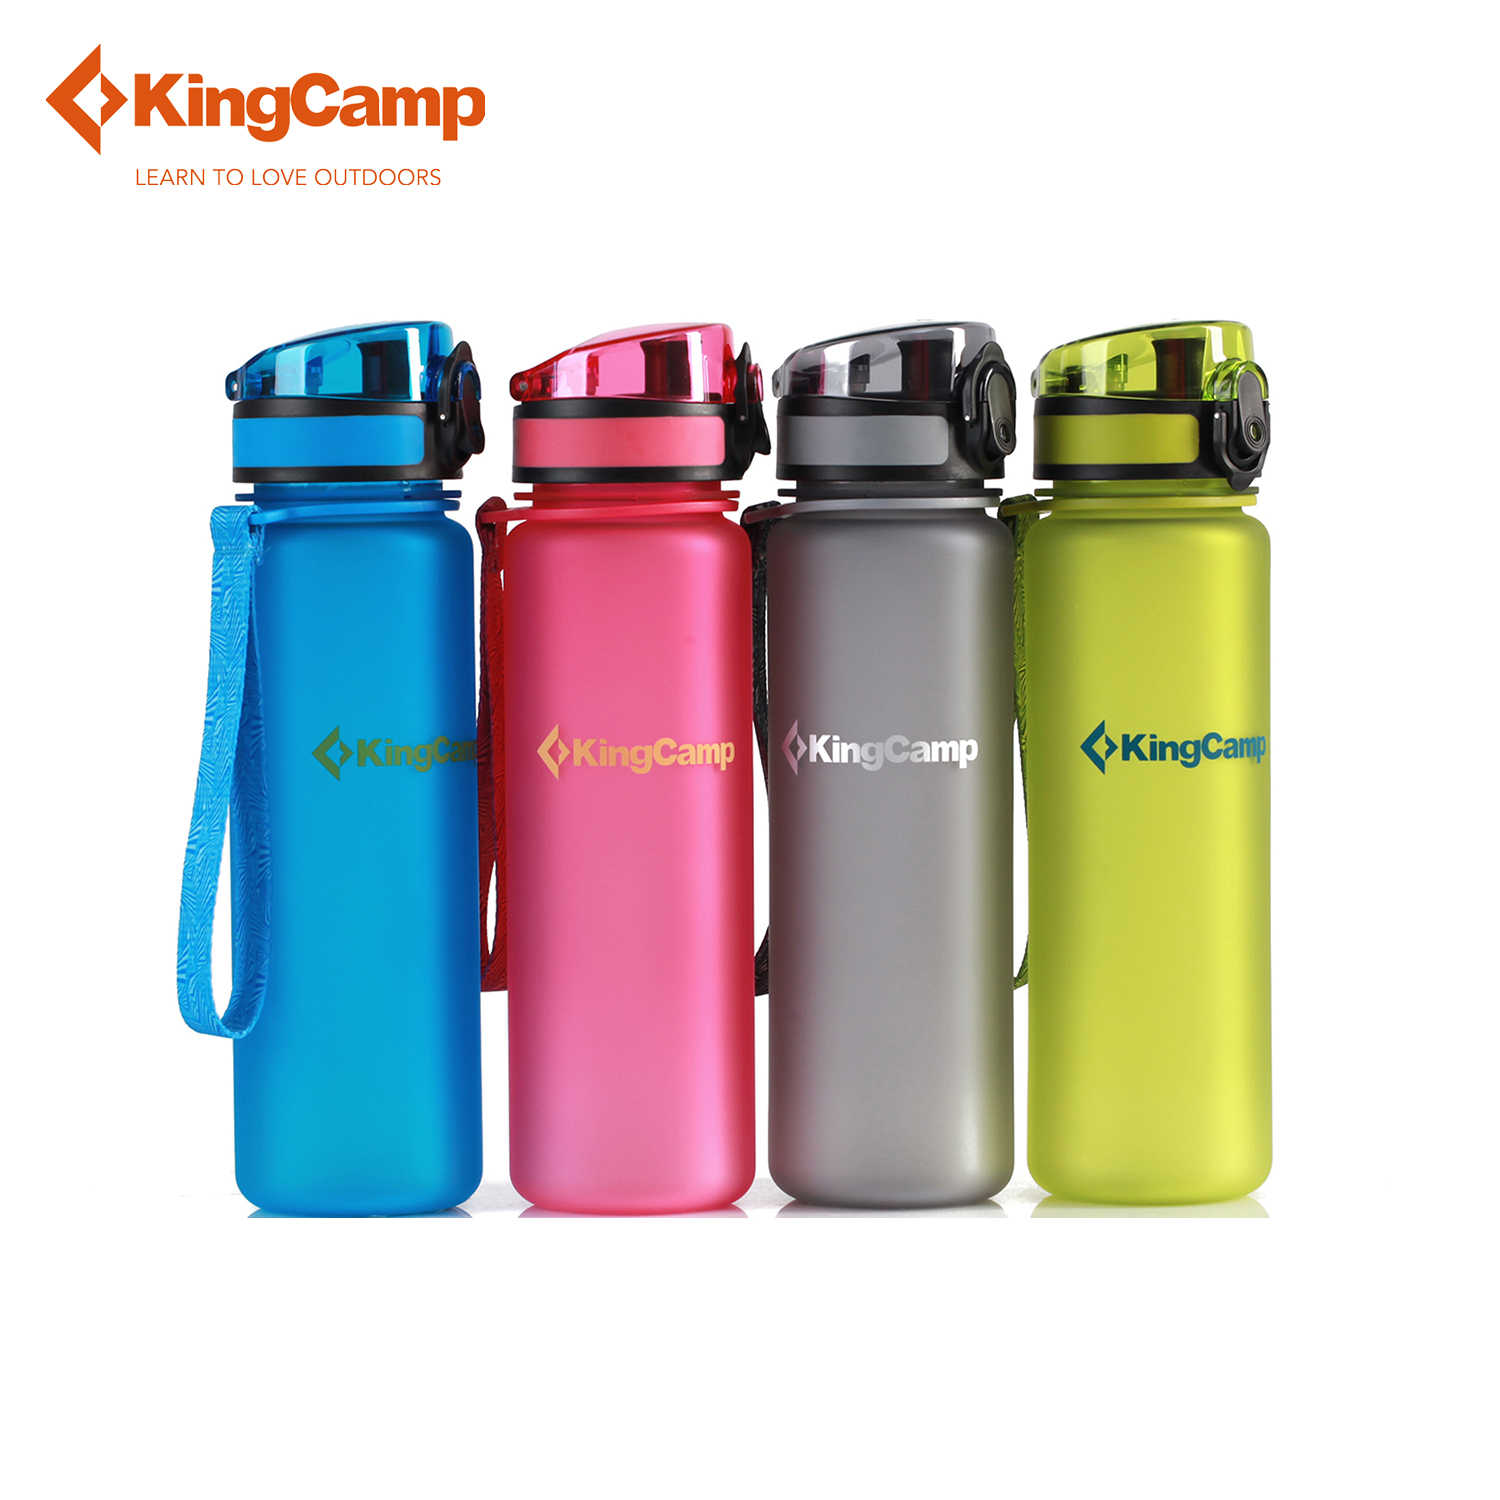 ef15949f6ba KingCamp 500ml Sport Bottle Portable Juice Drink Bottle For Outdoor Sports  Cycling Travel Camping Climbing Hiking